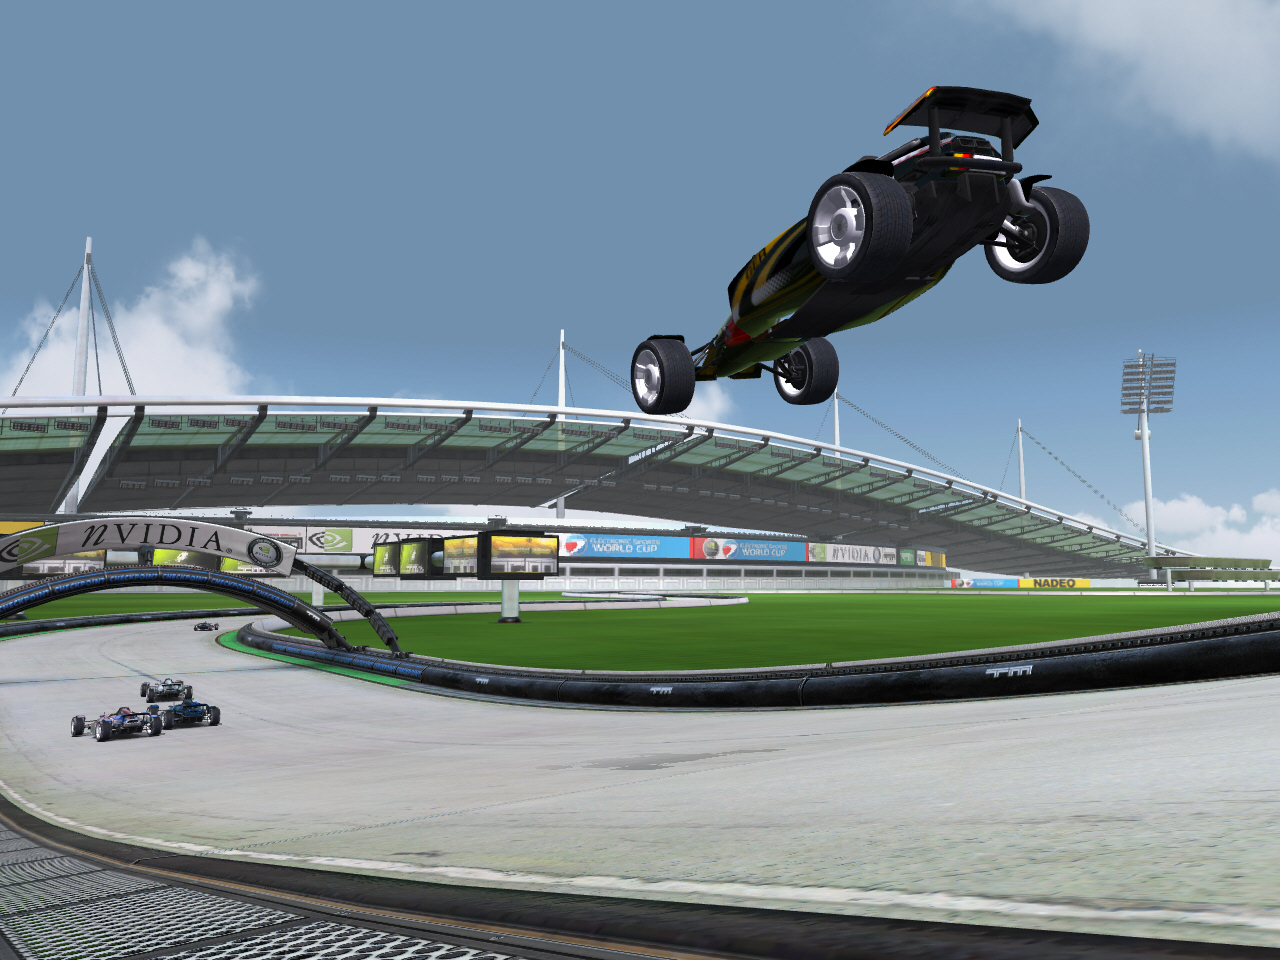 demos pc trackmania nations full version free download megagames. Black Bedroom Furniture Sets. Home Design Ideas